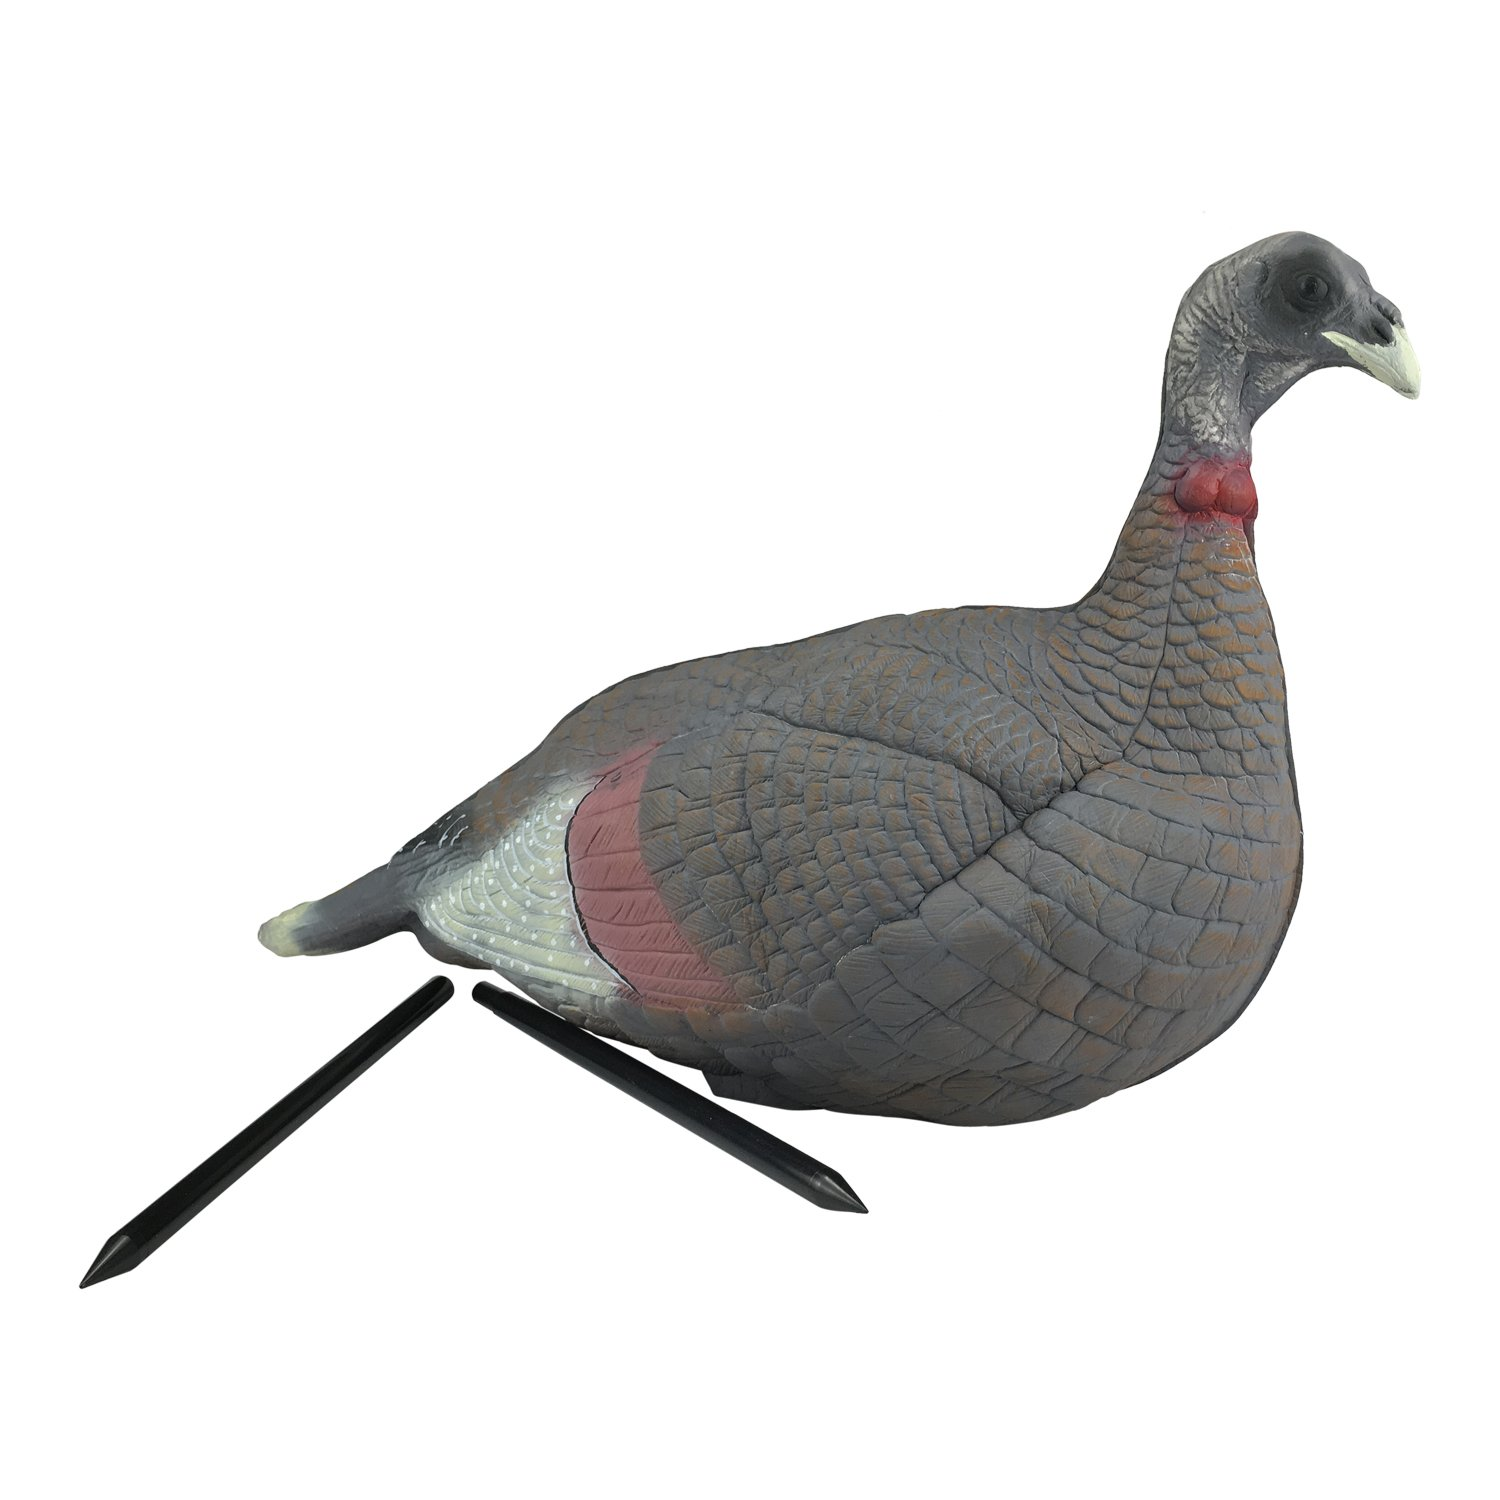 TOURBON Foldable Hunting Turkey Decoy with Stake by TOURBON (Image #1)